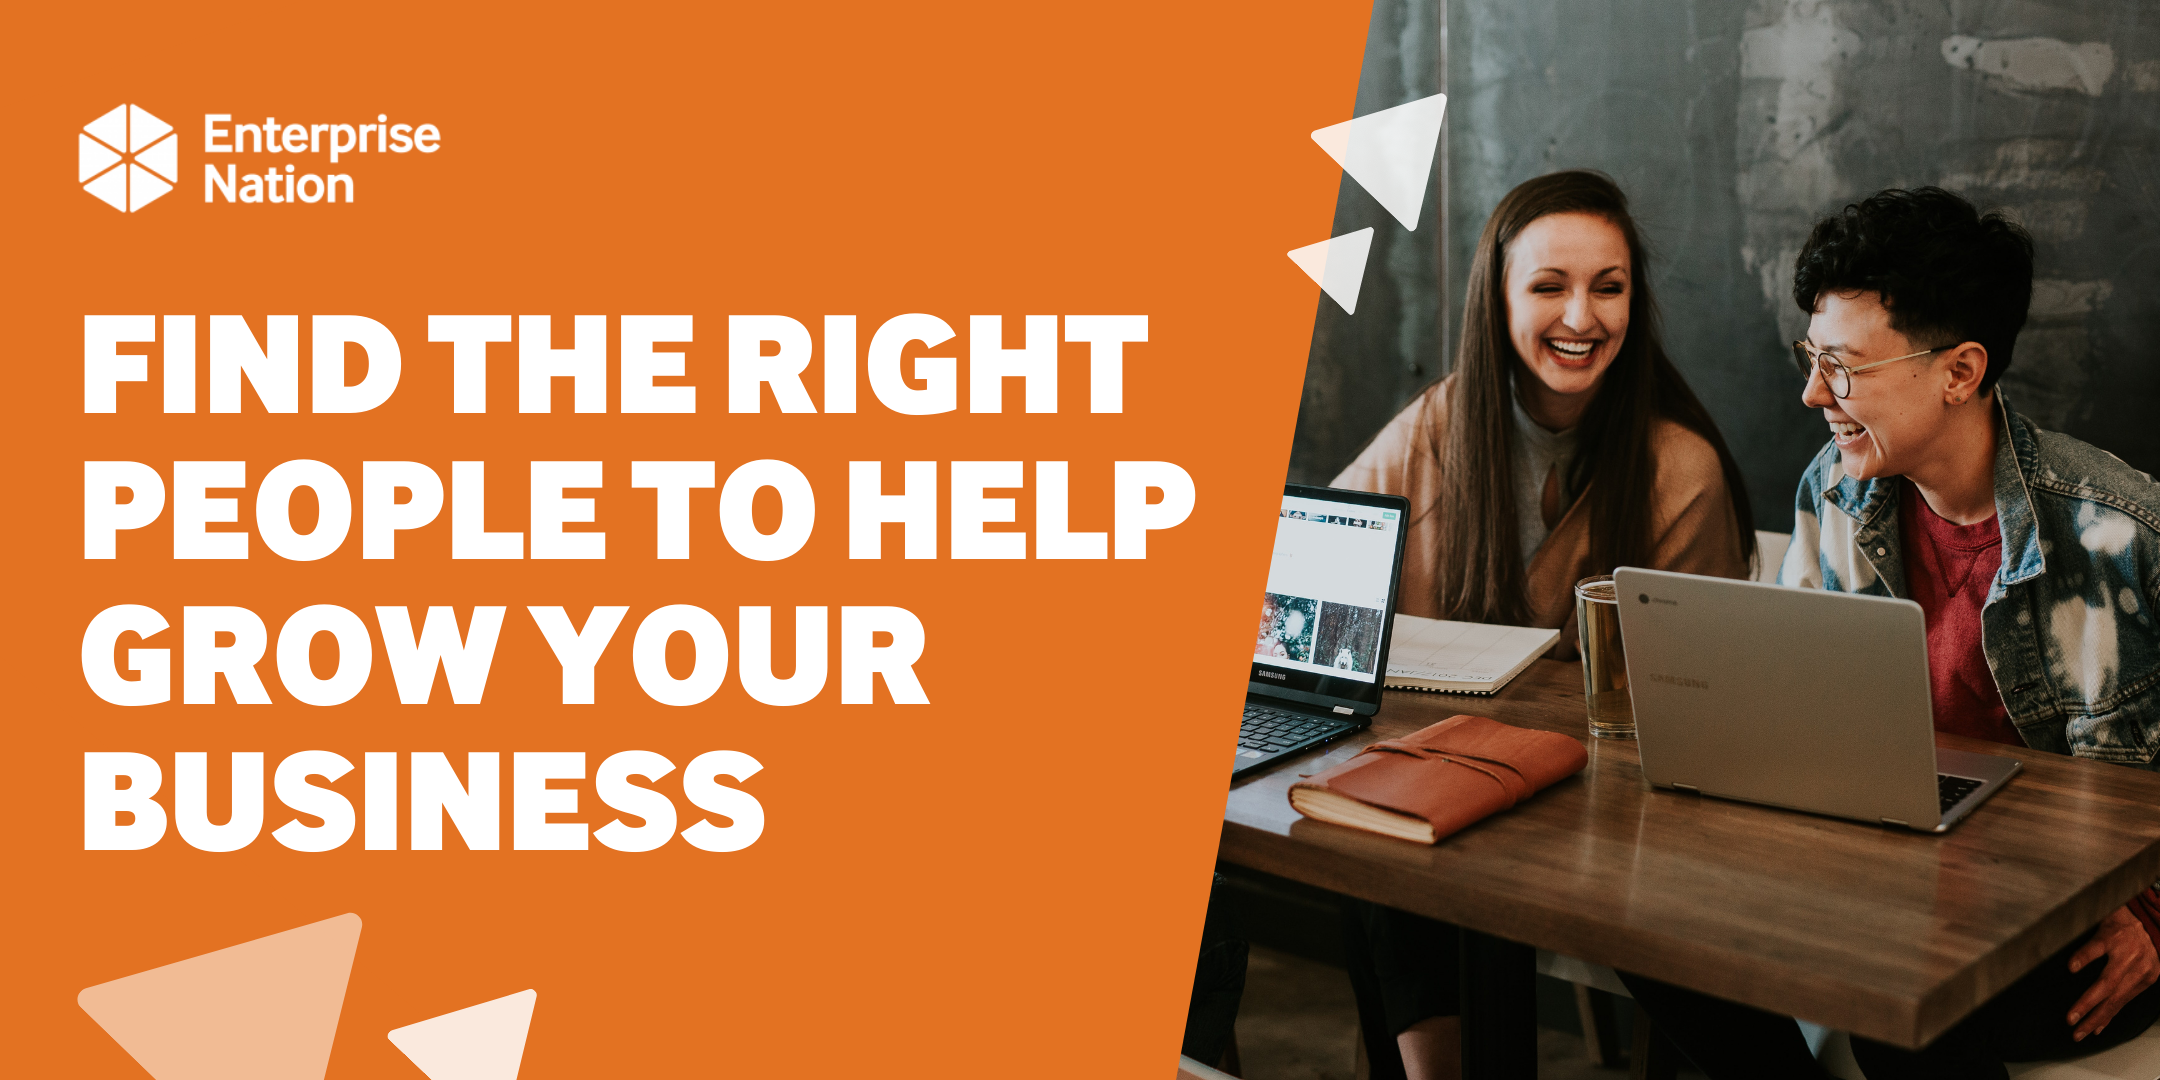 Your guide to finding the right people to help grow your small business